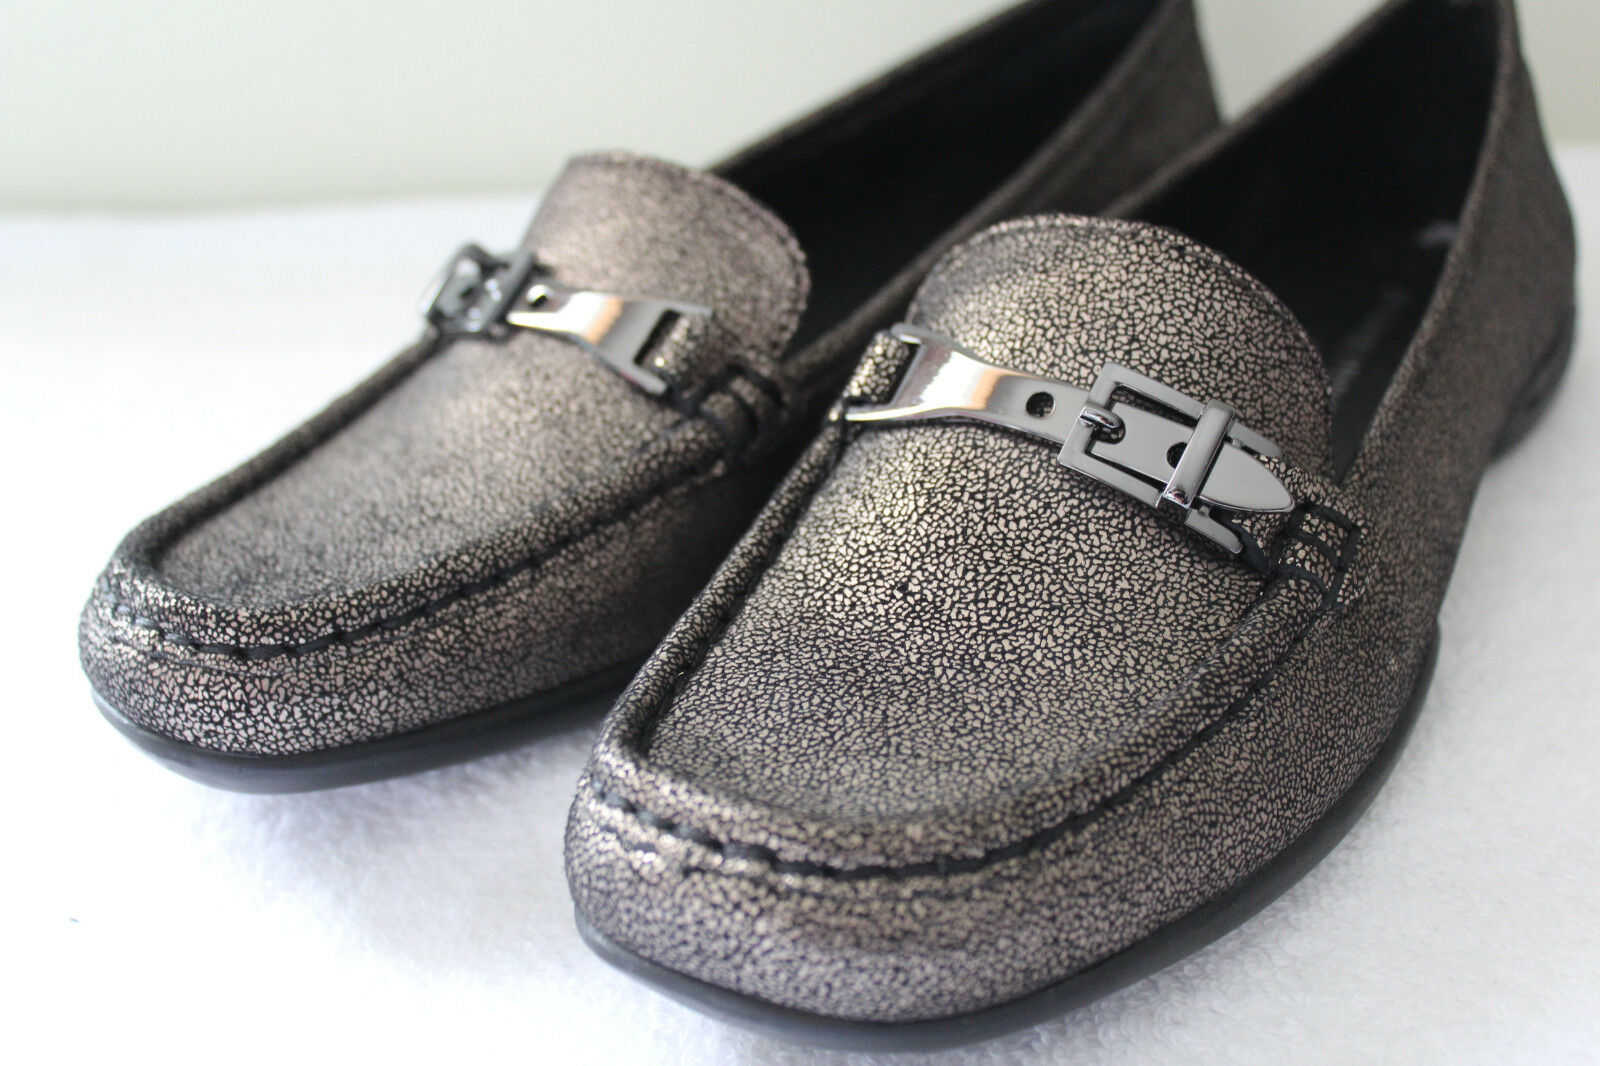 NEW! Donald J. Pliner Gorgeous VEEO Leather Metallic Flats Driving Loafers 6 M